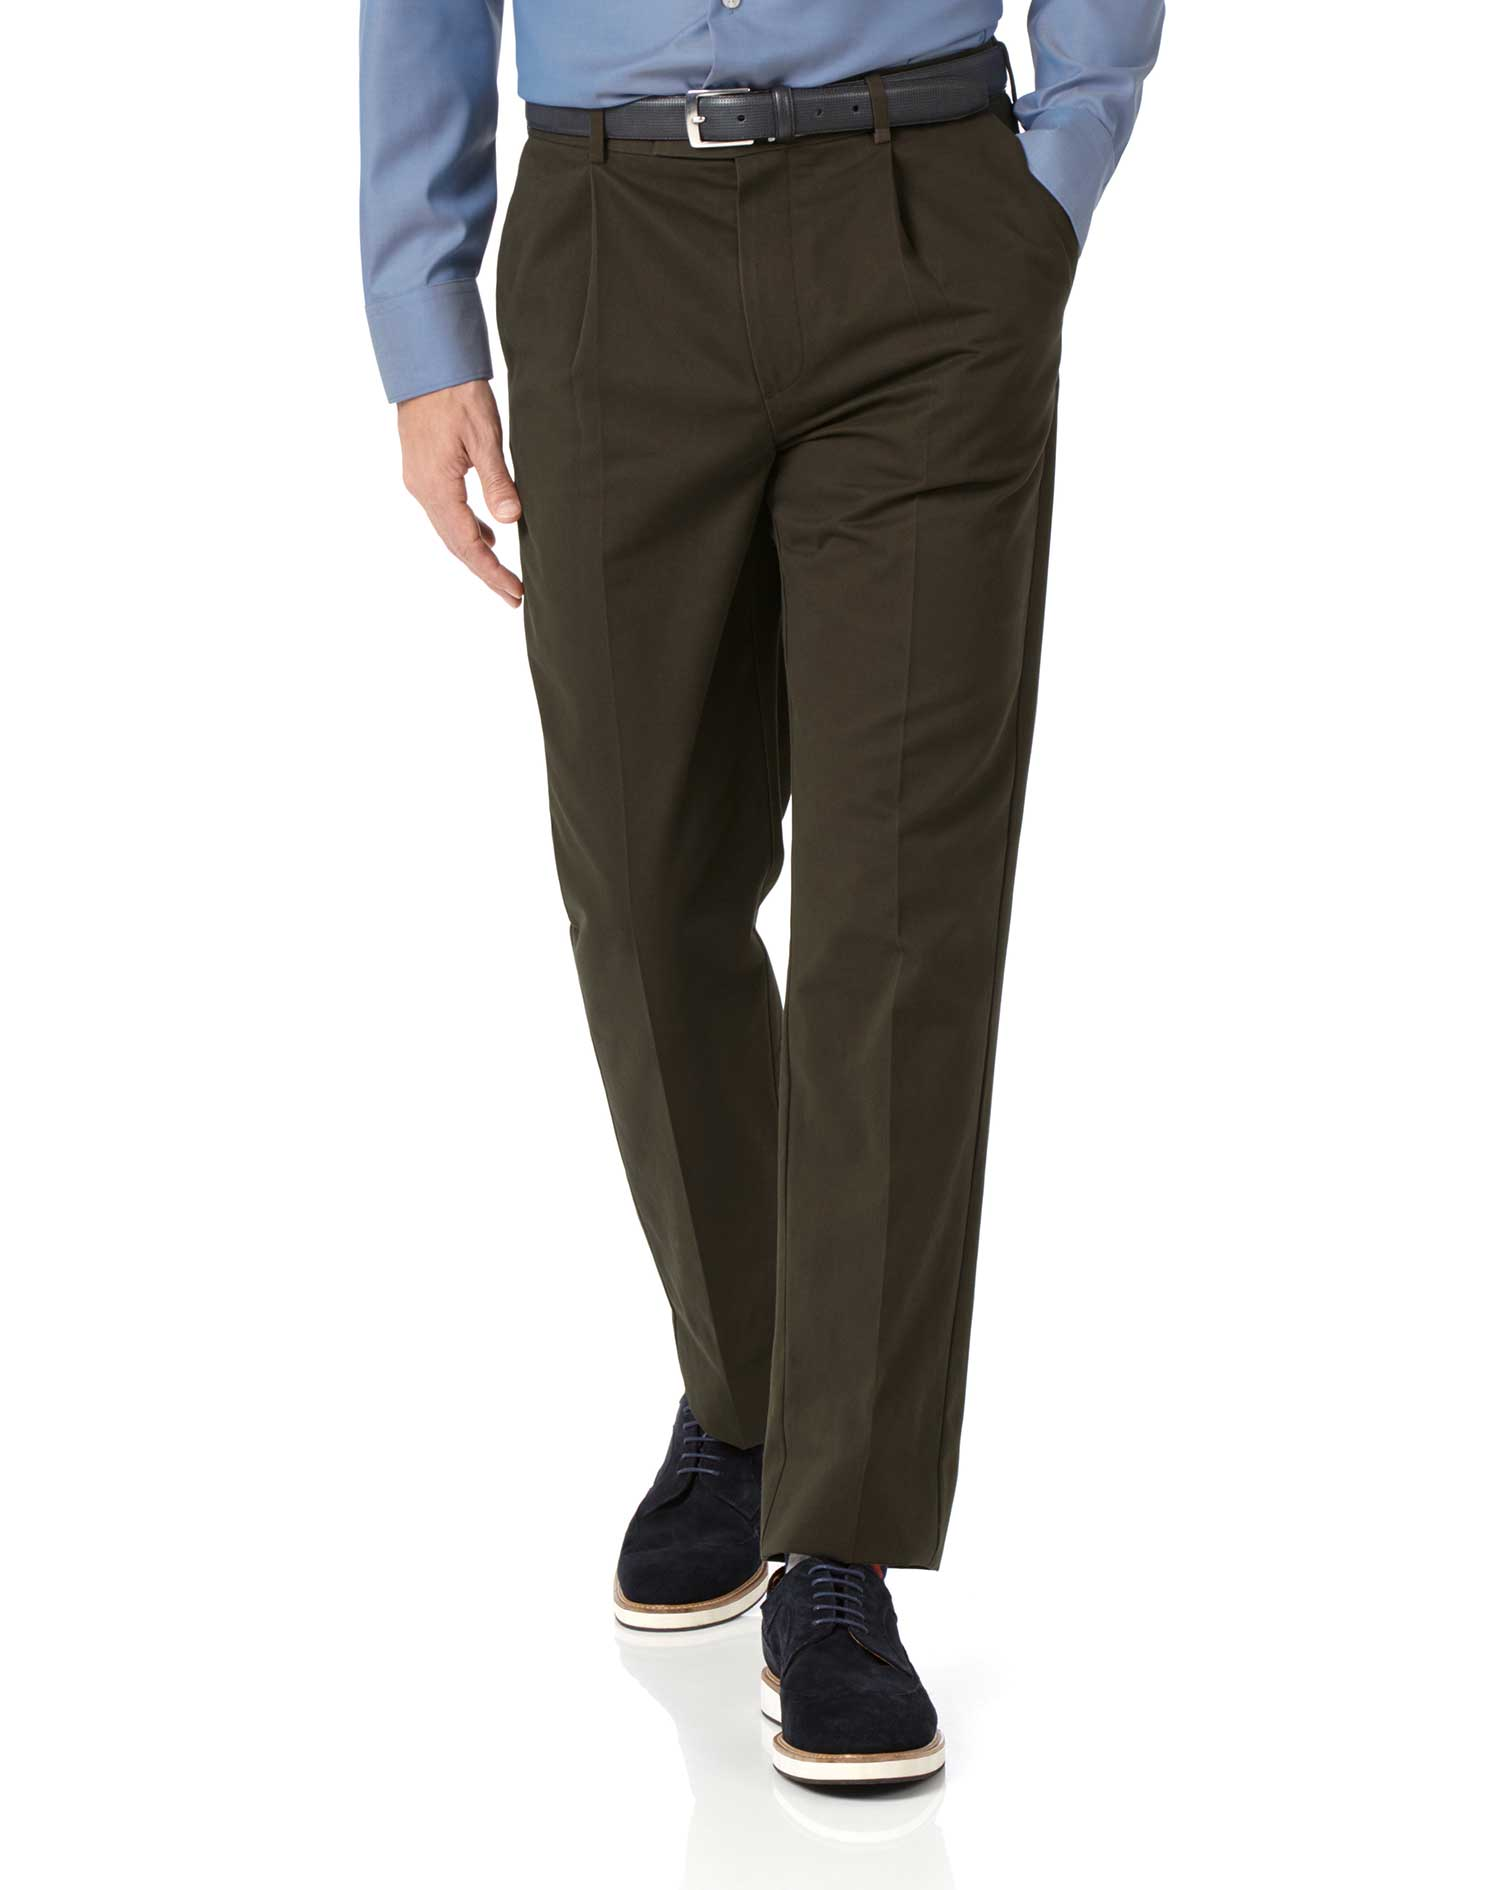 Brown Classic Fit Single Pleat Non-Iron Cotton Chino Trousers Size W38 L34 by Charles Tyrwhitt